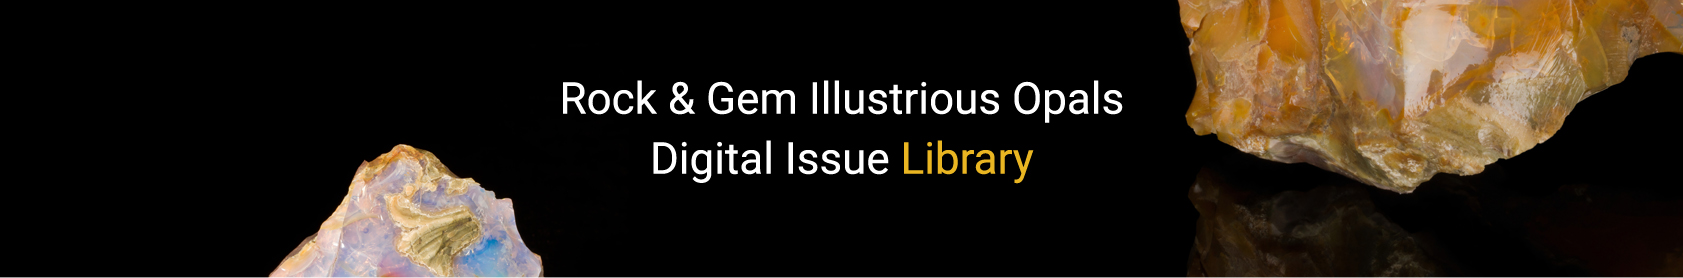 Rock & Gem Illustrious Opals Digital Issue Library Banner